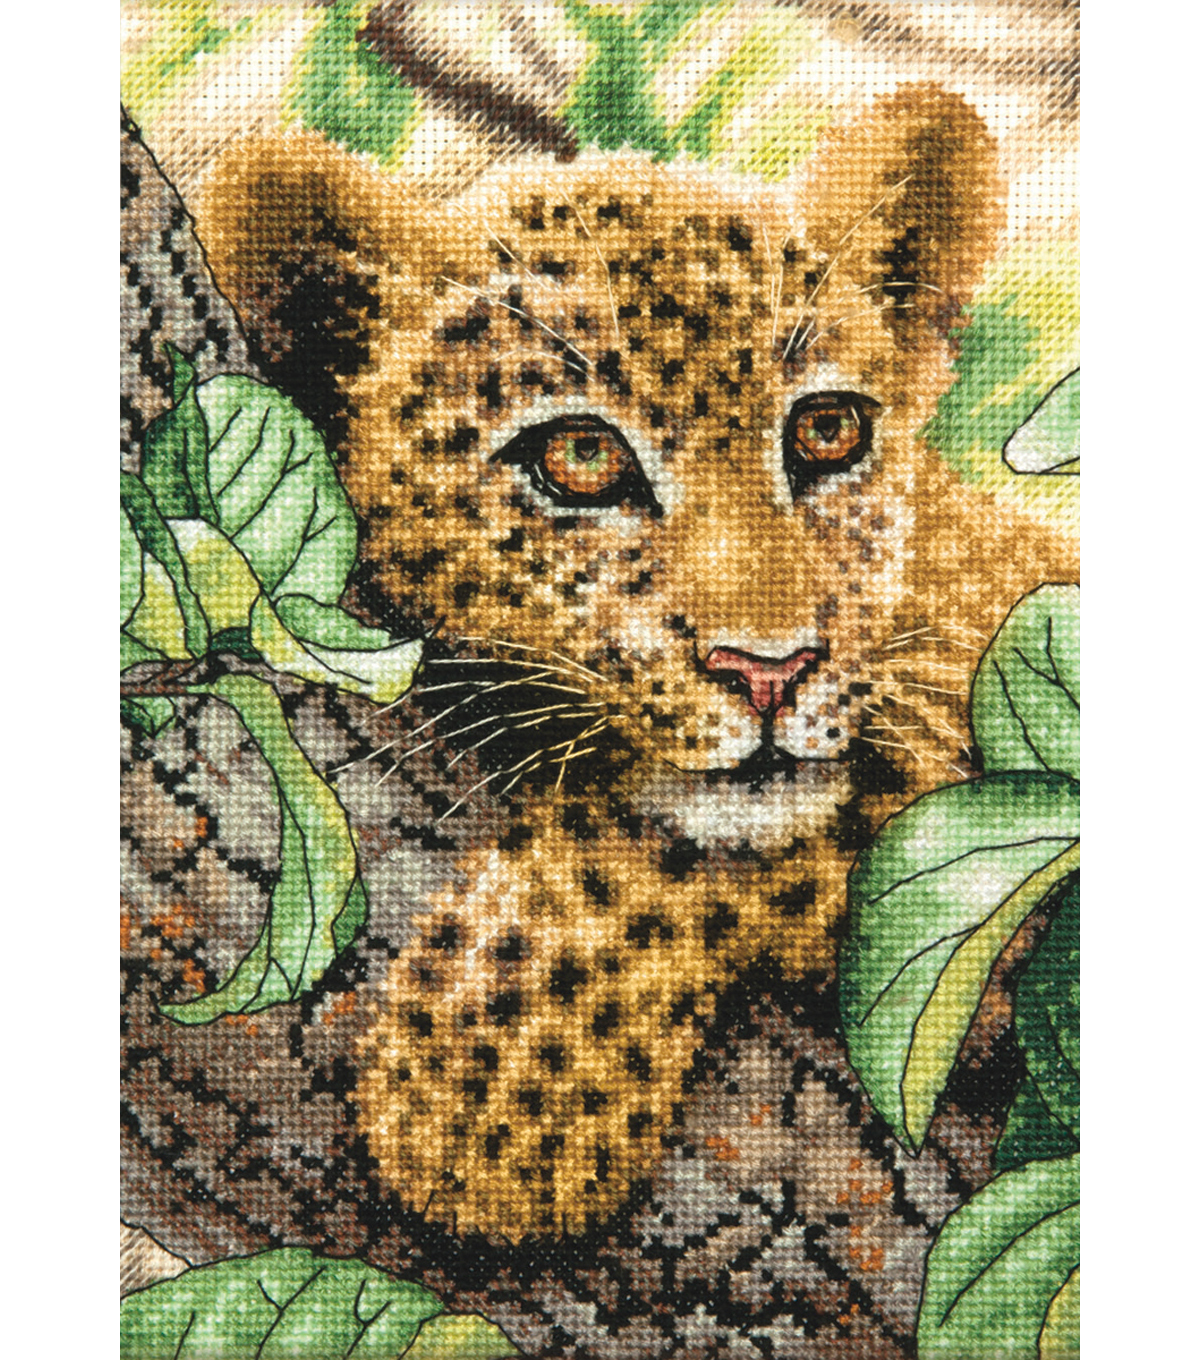 Gold Collection Petite Leopard Cub Counted Cross Stitch Kit-5\u0022X7\u0022 18 Count